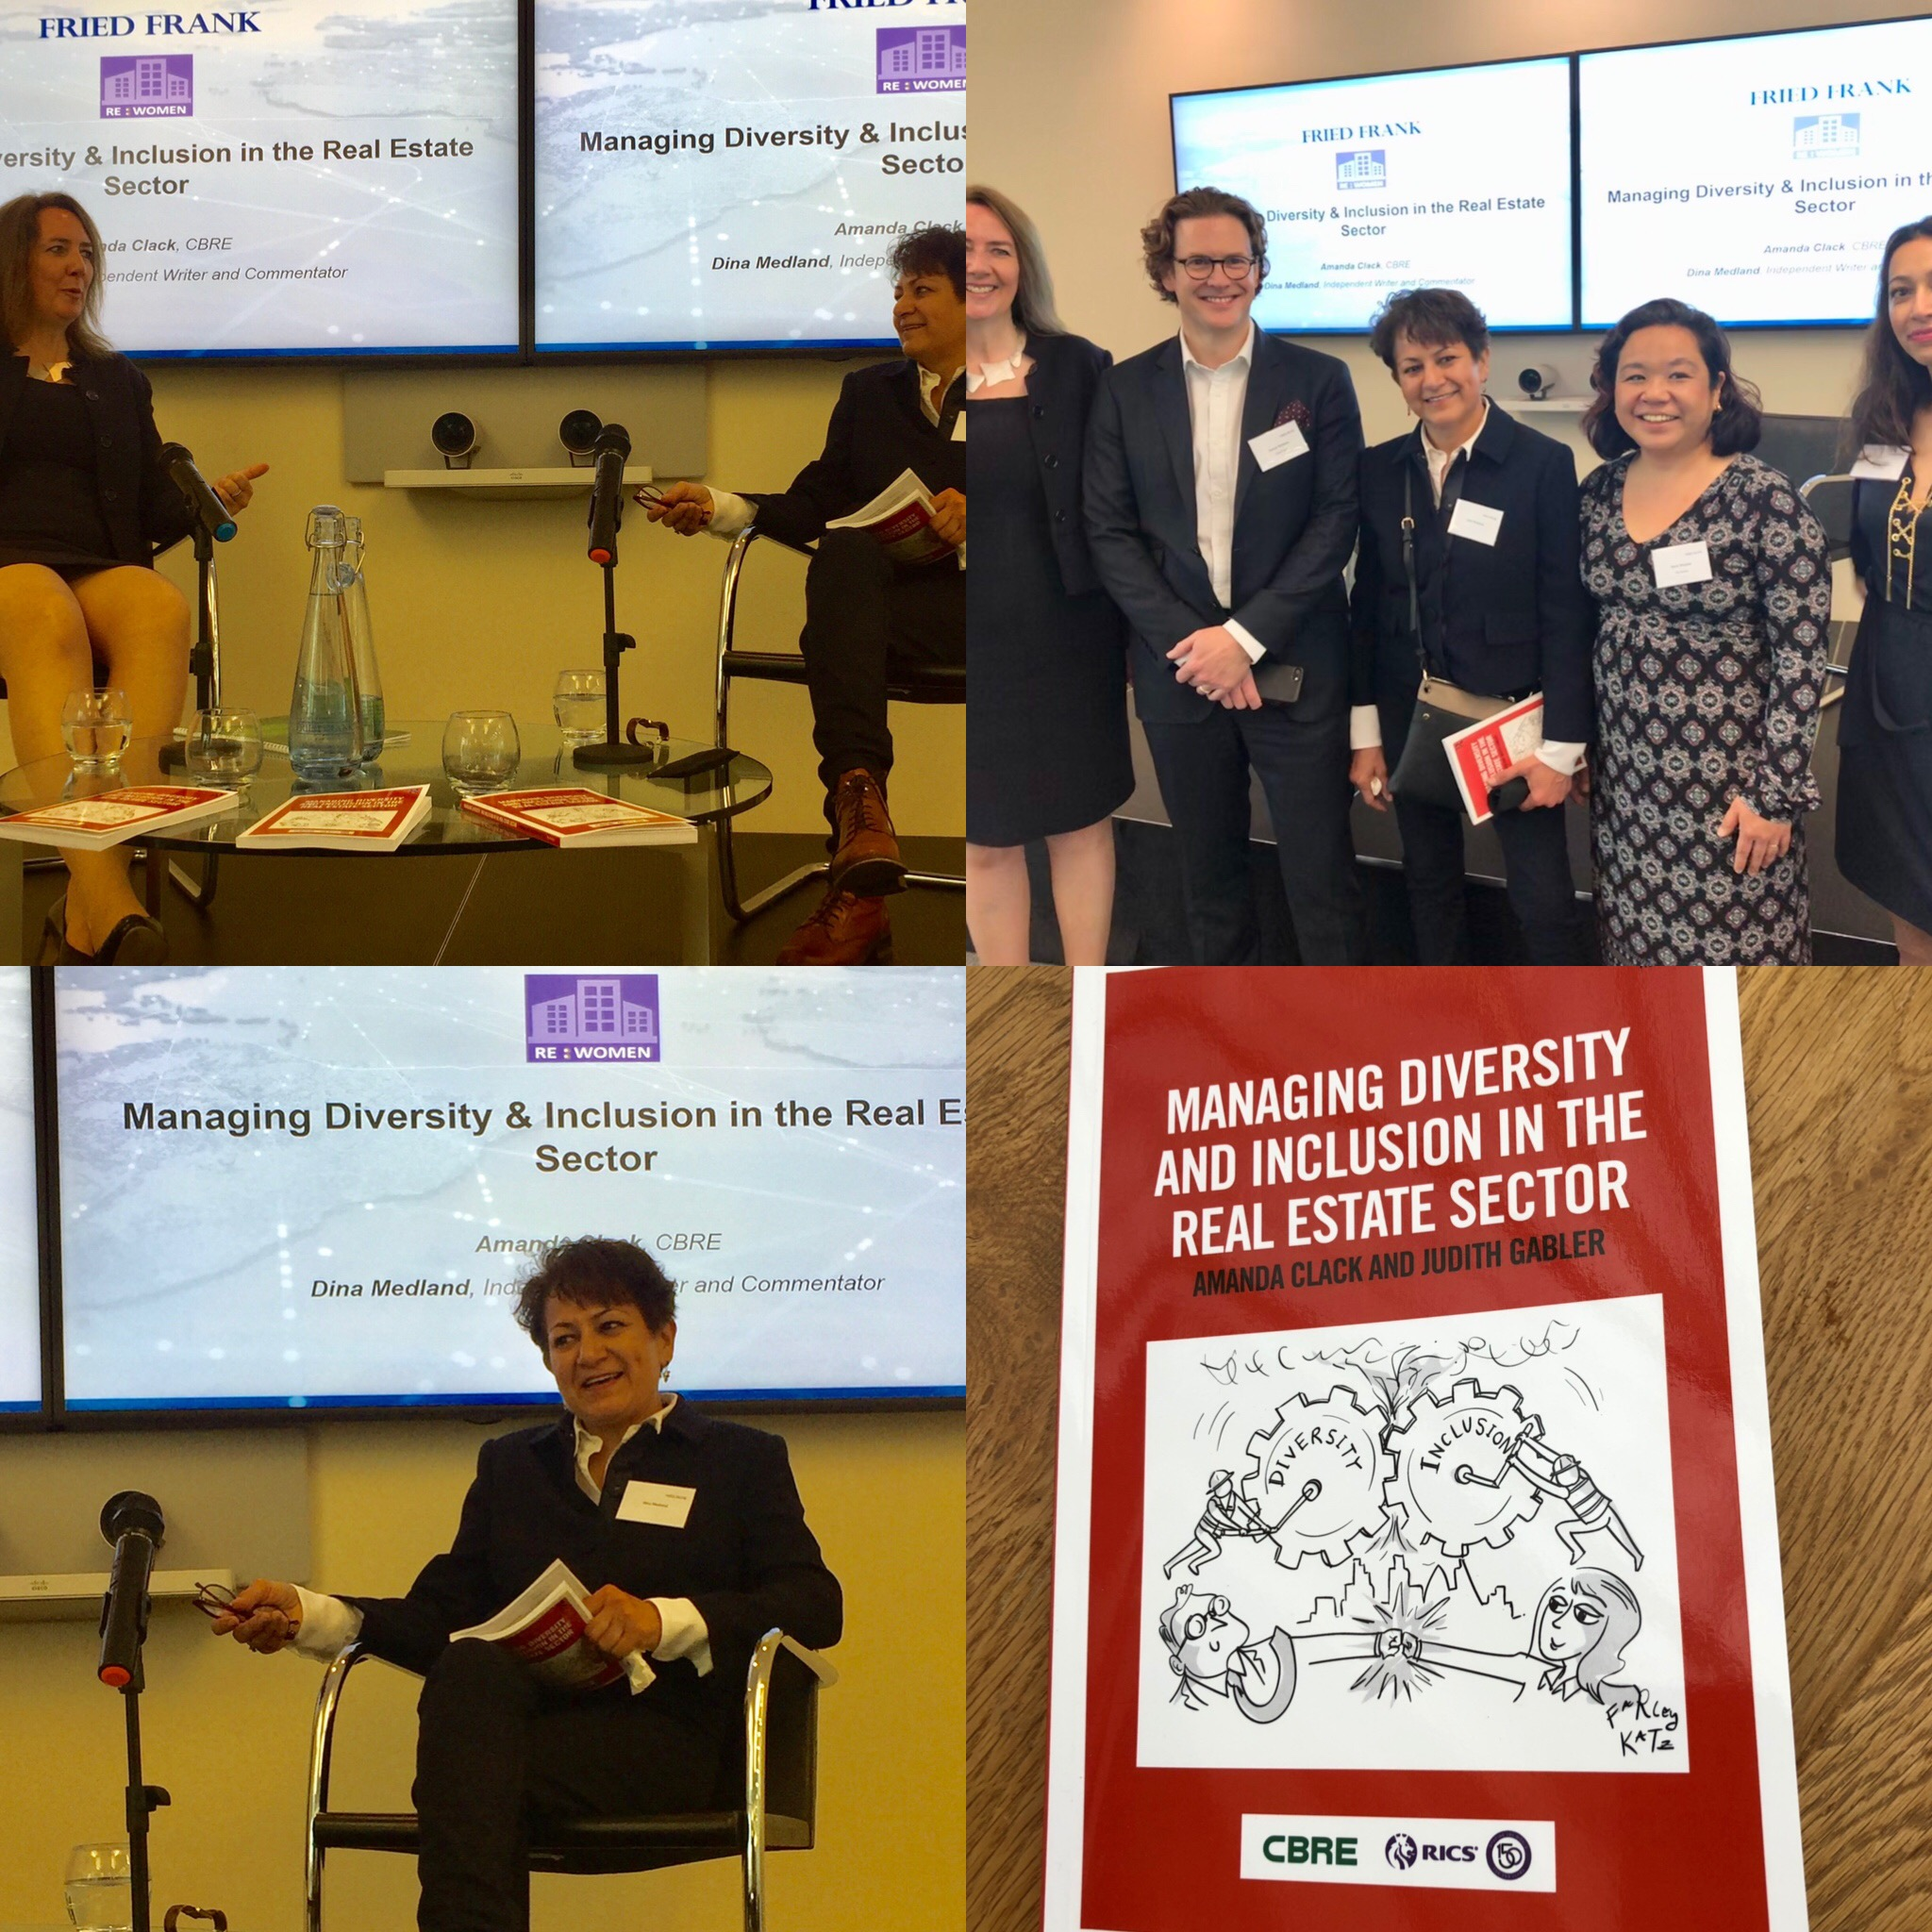 Diversity And Inclusion In Real Estate with CBRE UK - Event at Fried Frank, London June 12, 2019 to discuss a new book by Amanda Clack and Judith Gabler. Arranged by Real Estate Women. See Board Talk for post.